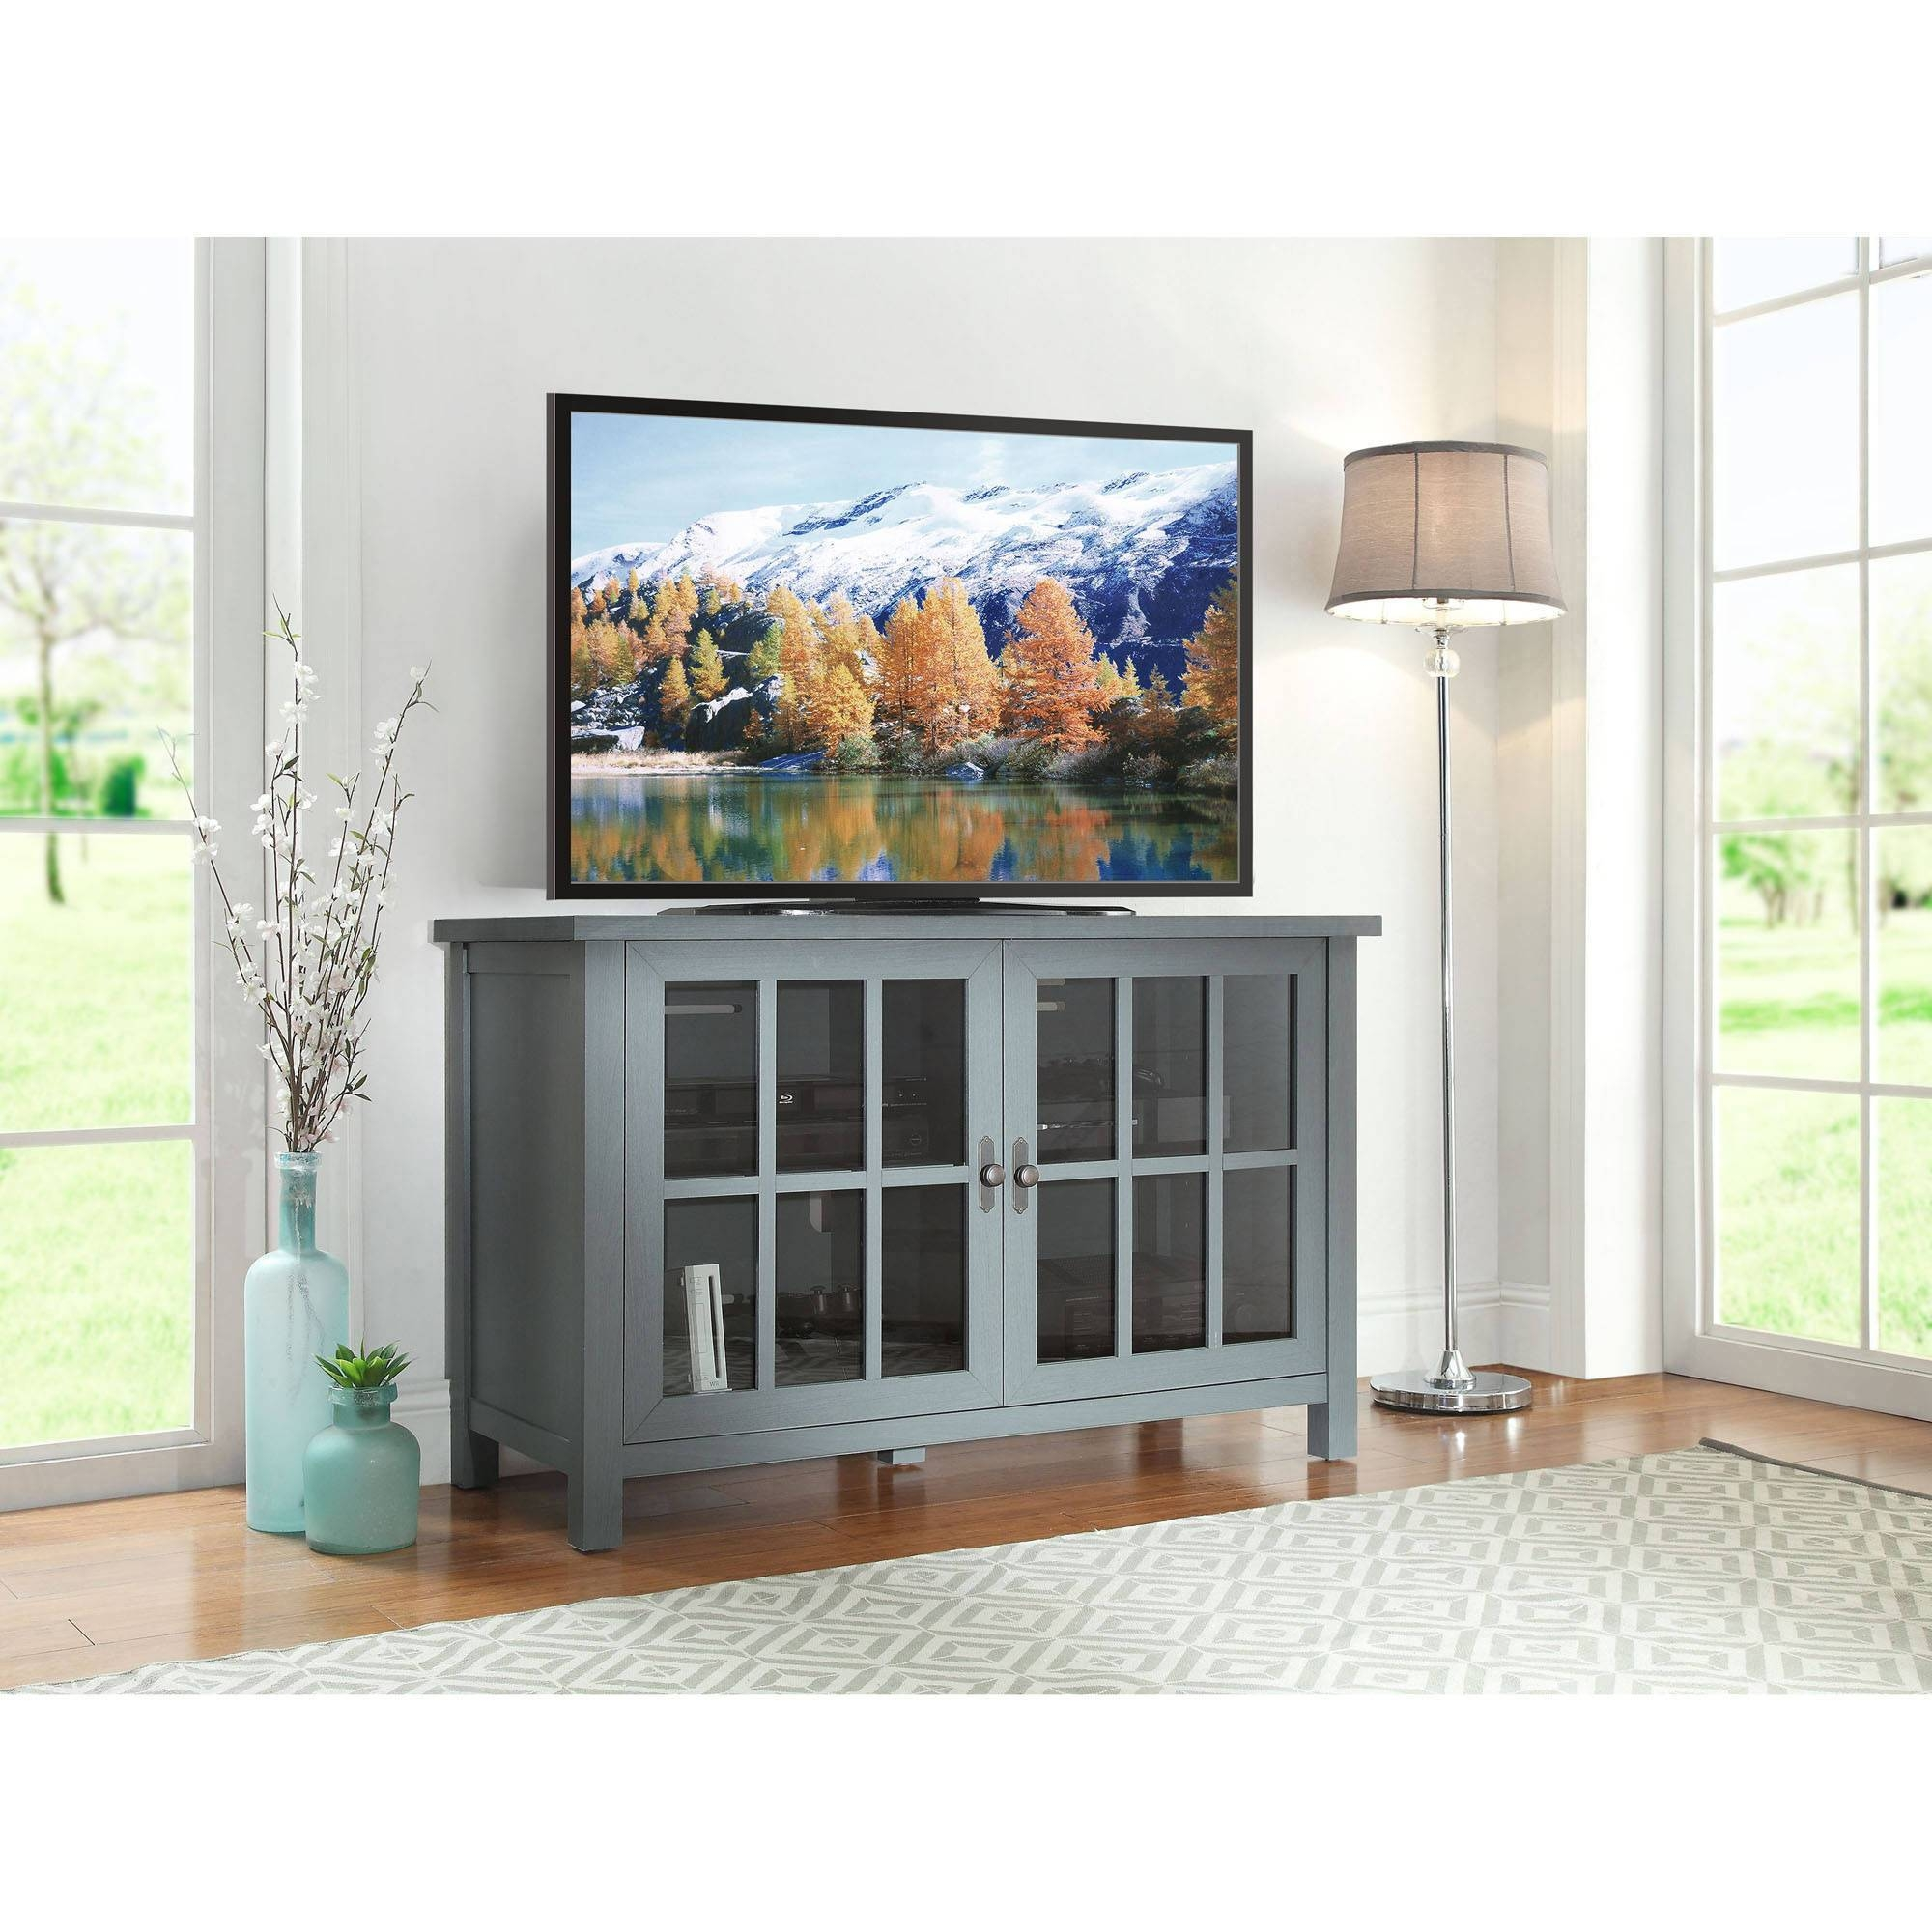 Better Homes And Gardens Oxford Square Tv Console For Tvs Up To 55 Throughout Square Tv Stands (View 5 of 15)